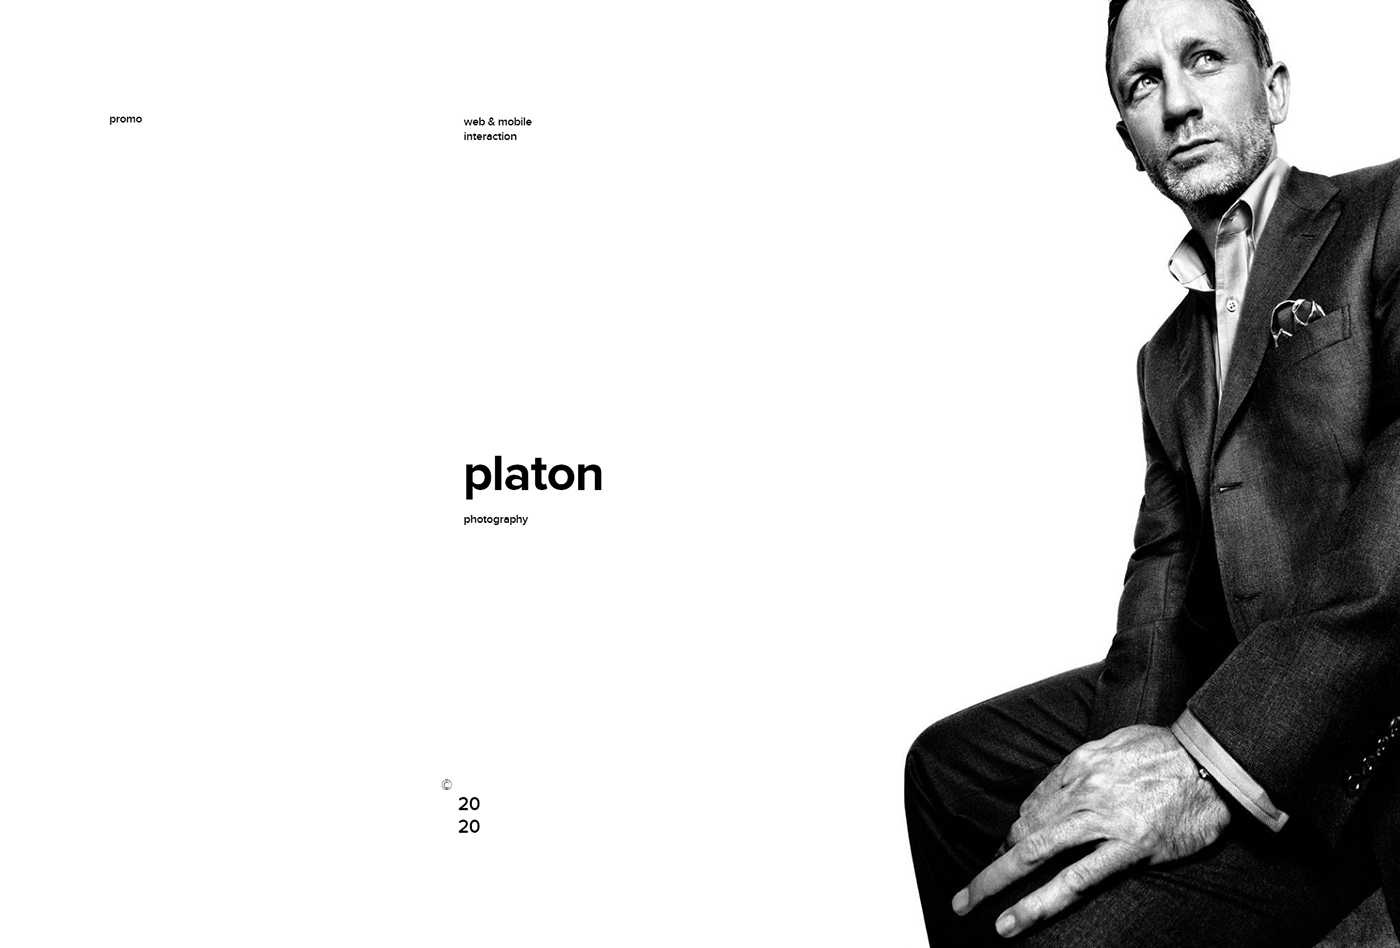 clean design interaction mobile Photography  platon simple personal Website